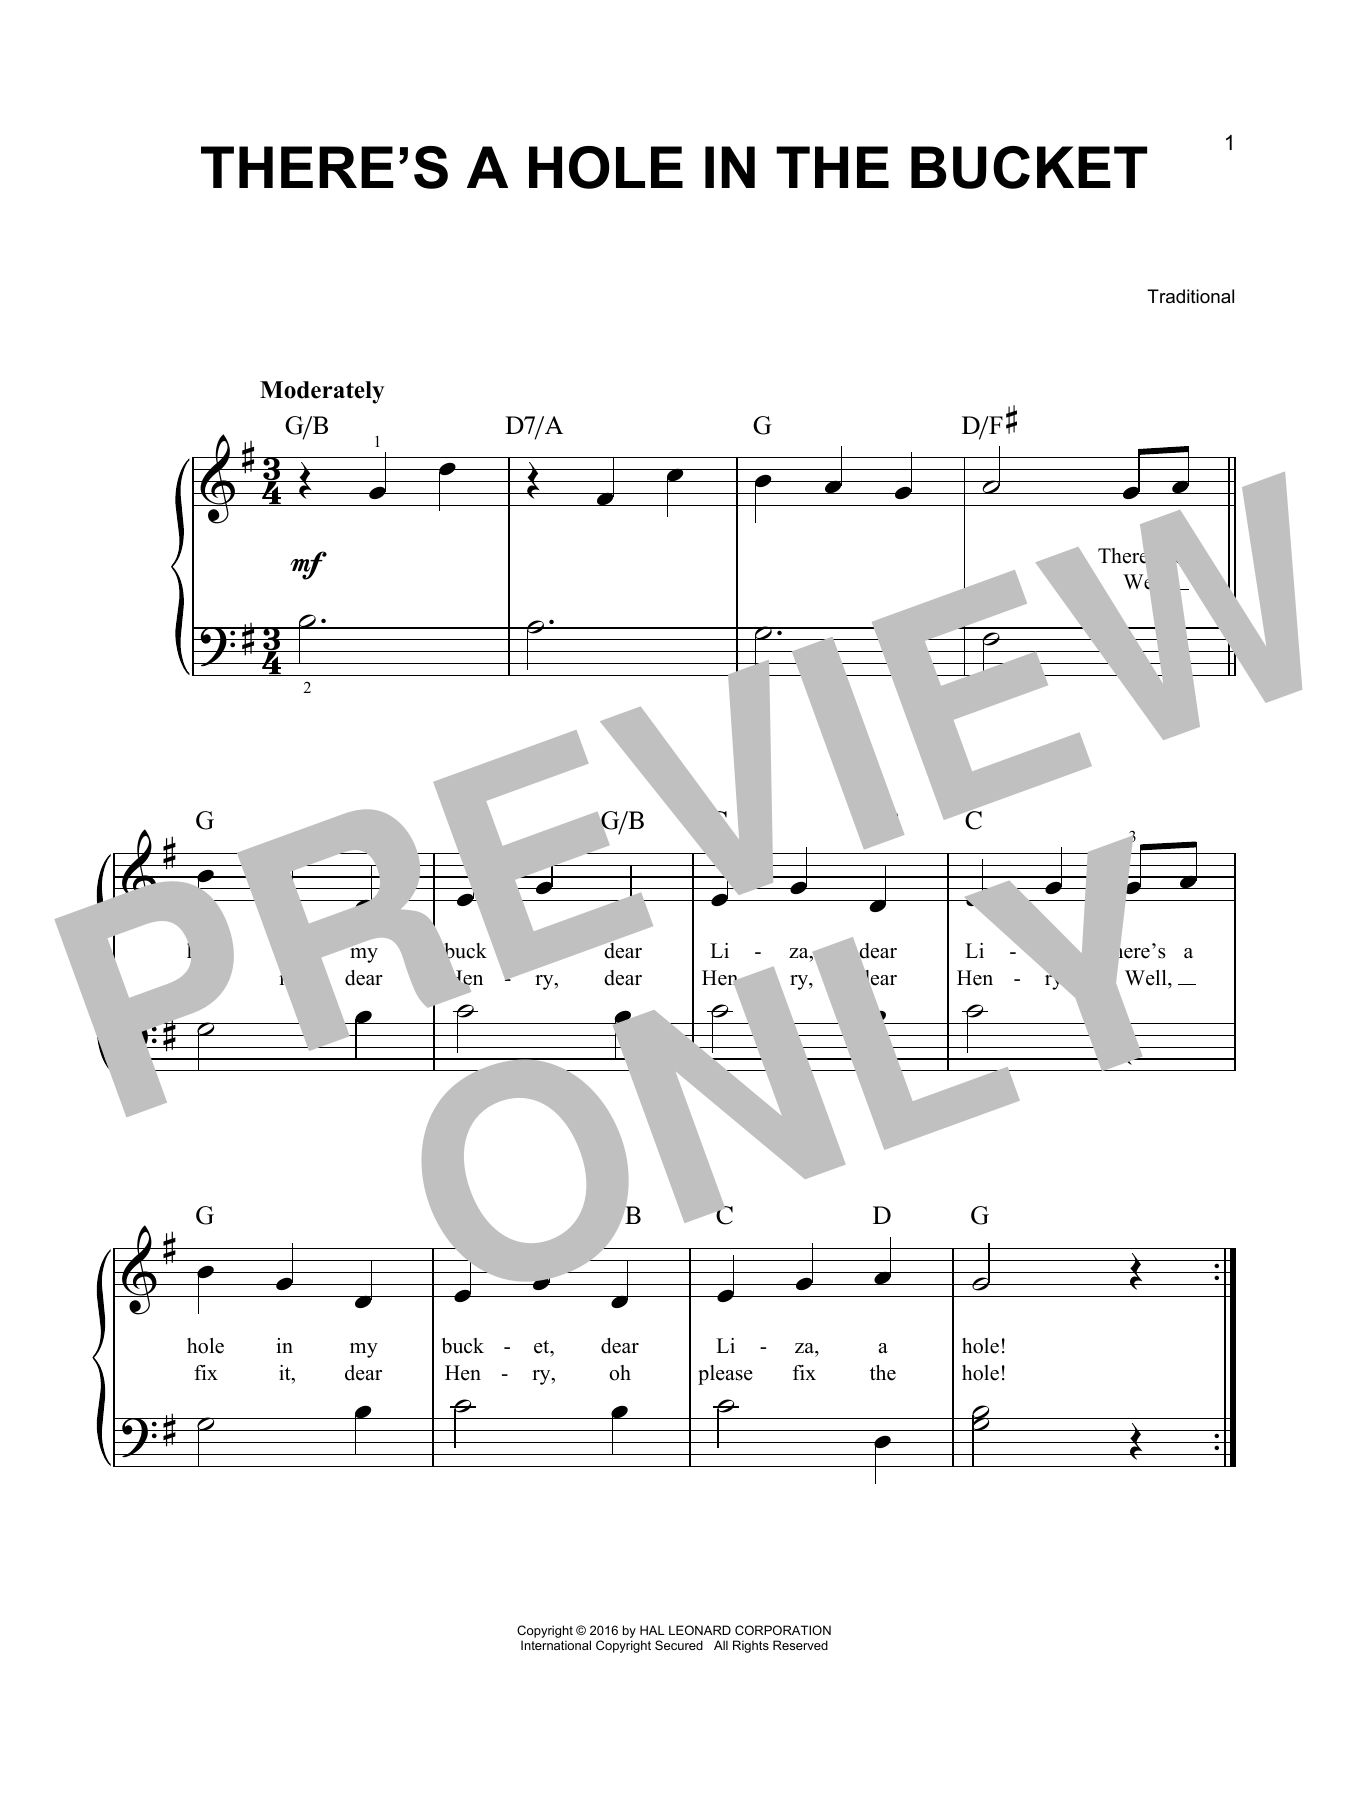 Traditional There's A Hole In The Bucket sheet music notes and chords. Download Printable PDF.